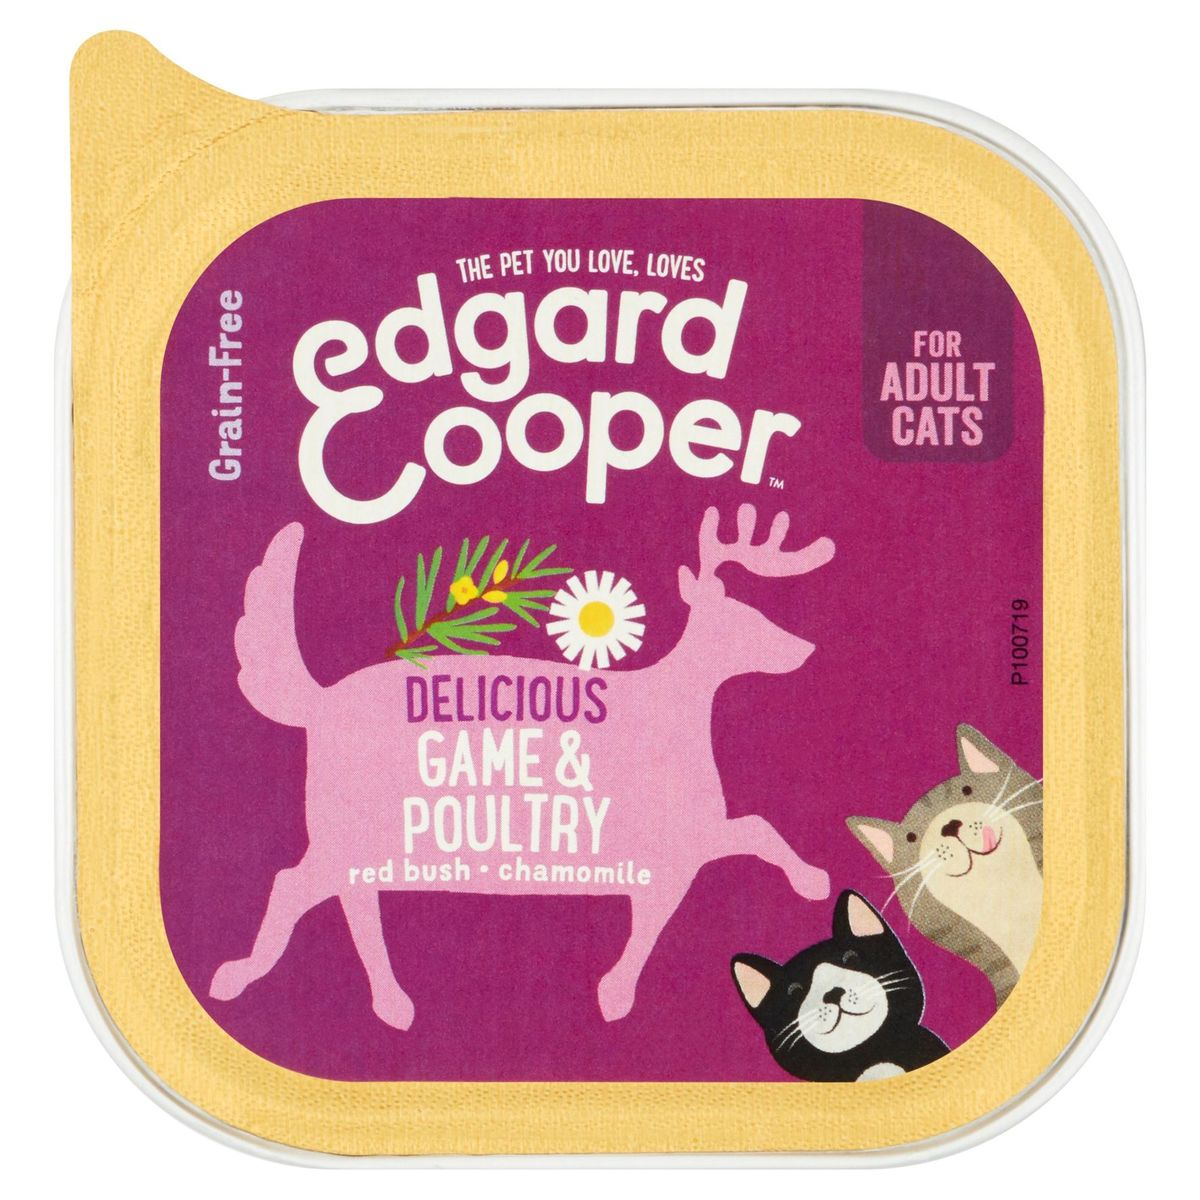 Edgard & Cooper Delicious Game & Poultry Red Bush Chamomile 85 g